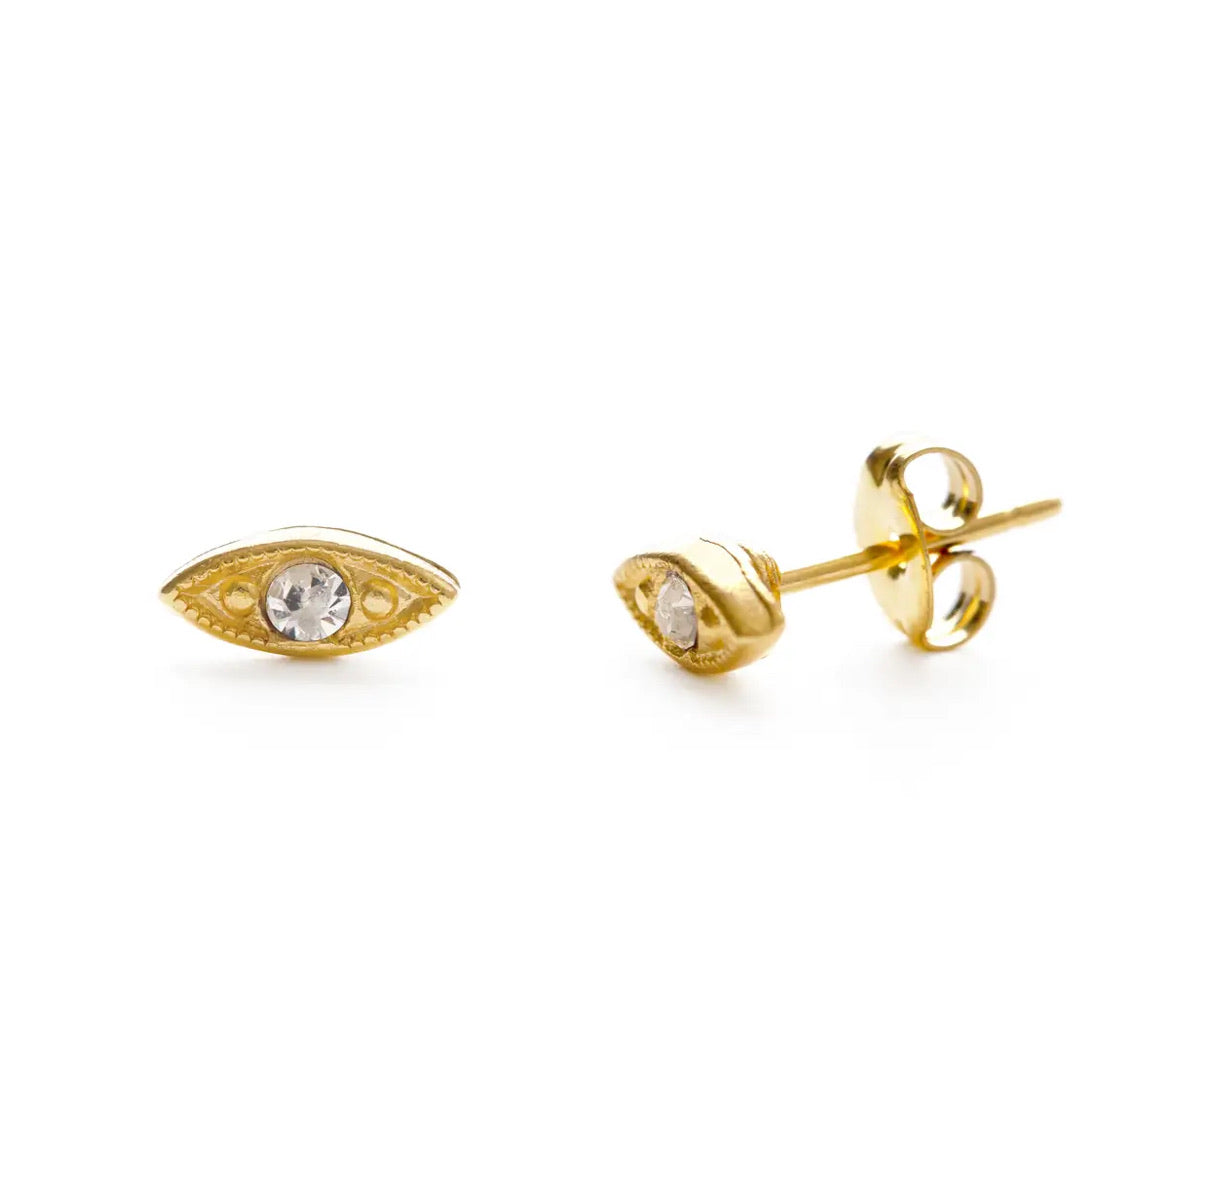 22EYE-CRY | Eye Studs- Crystal